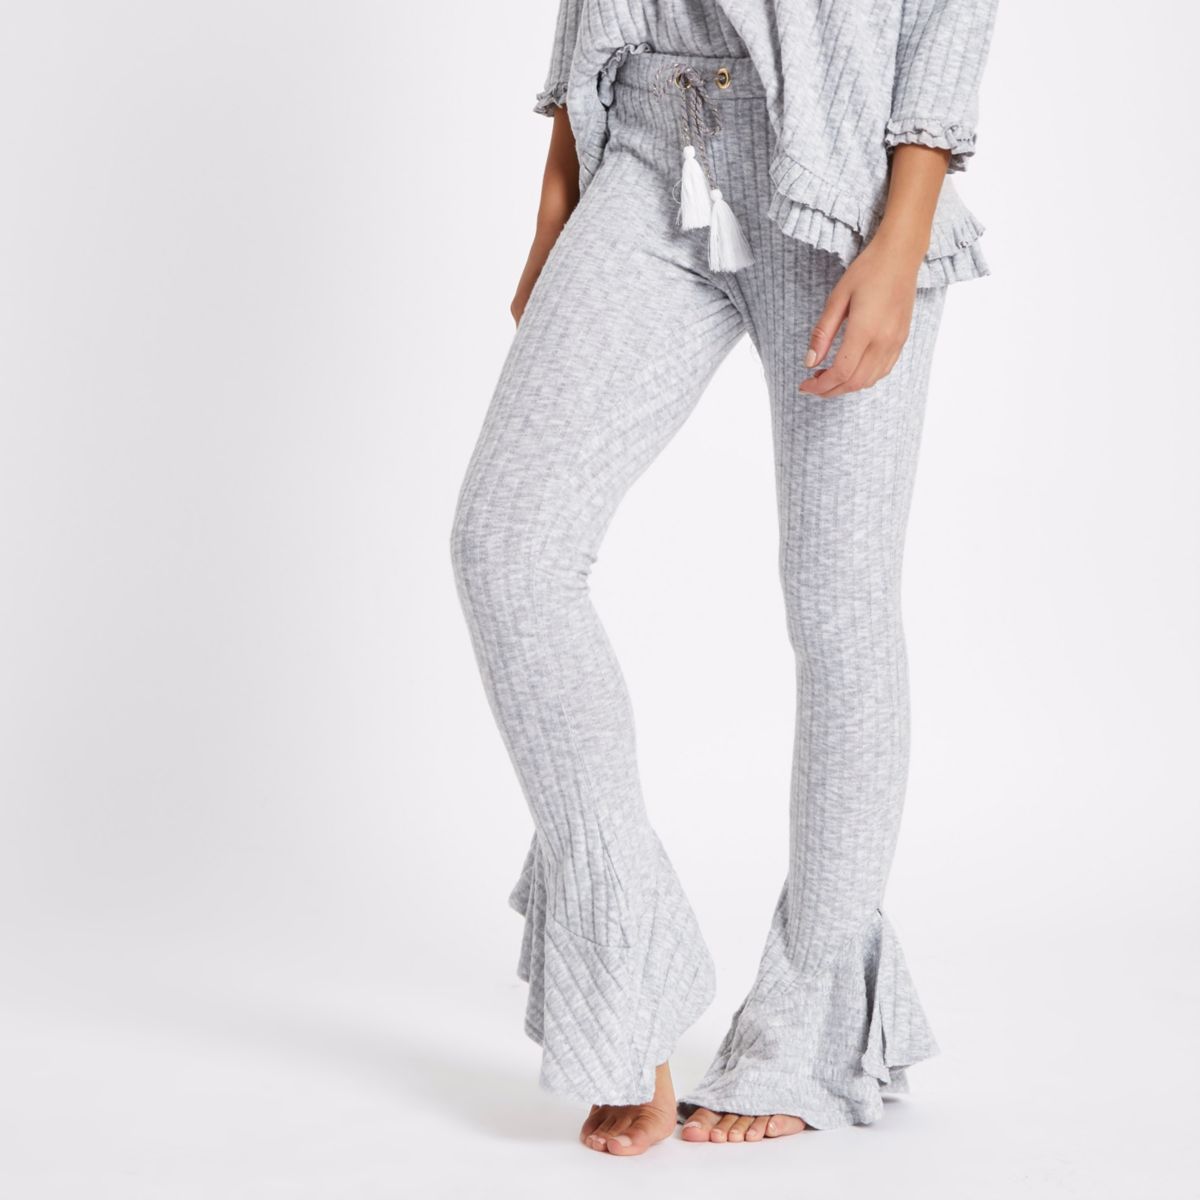 Light grey rib knit flare lounge pants